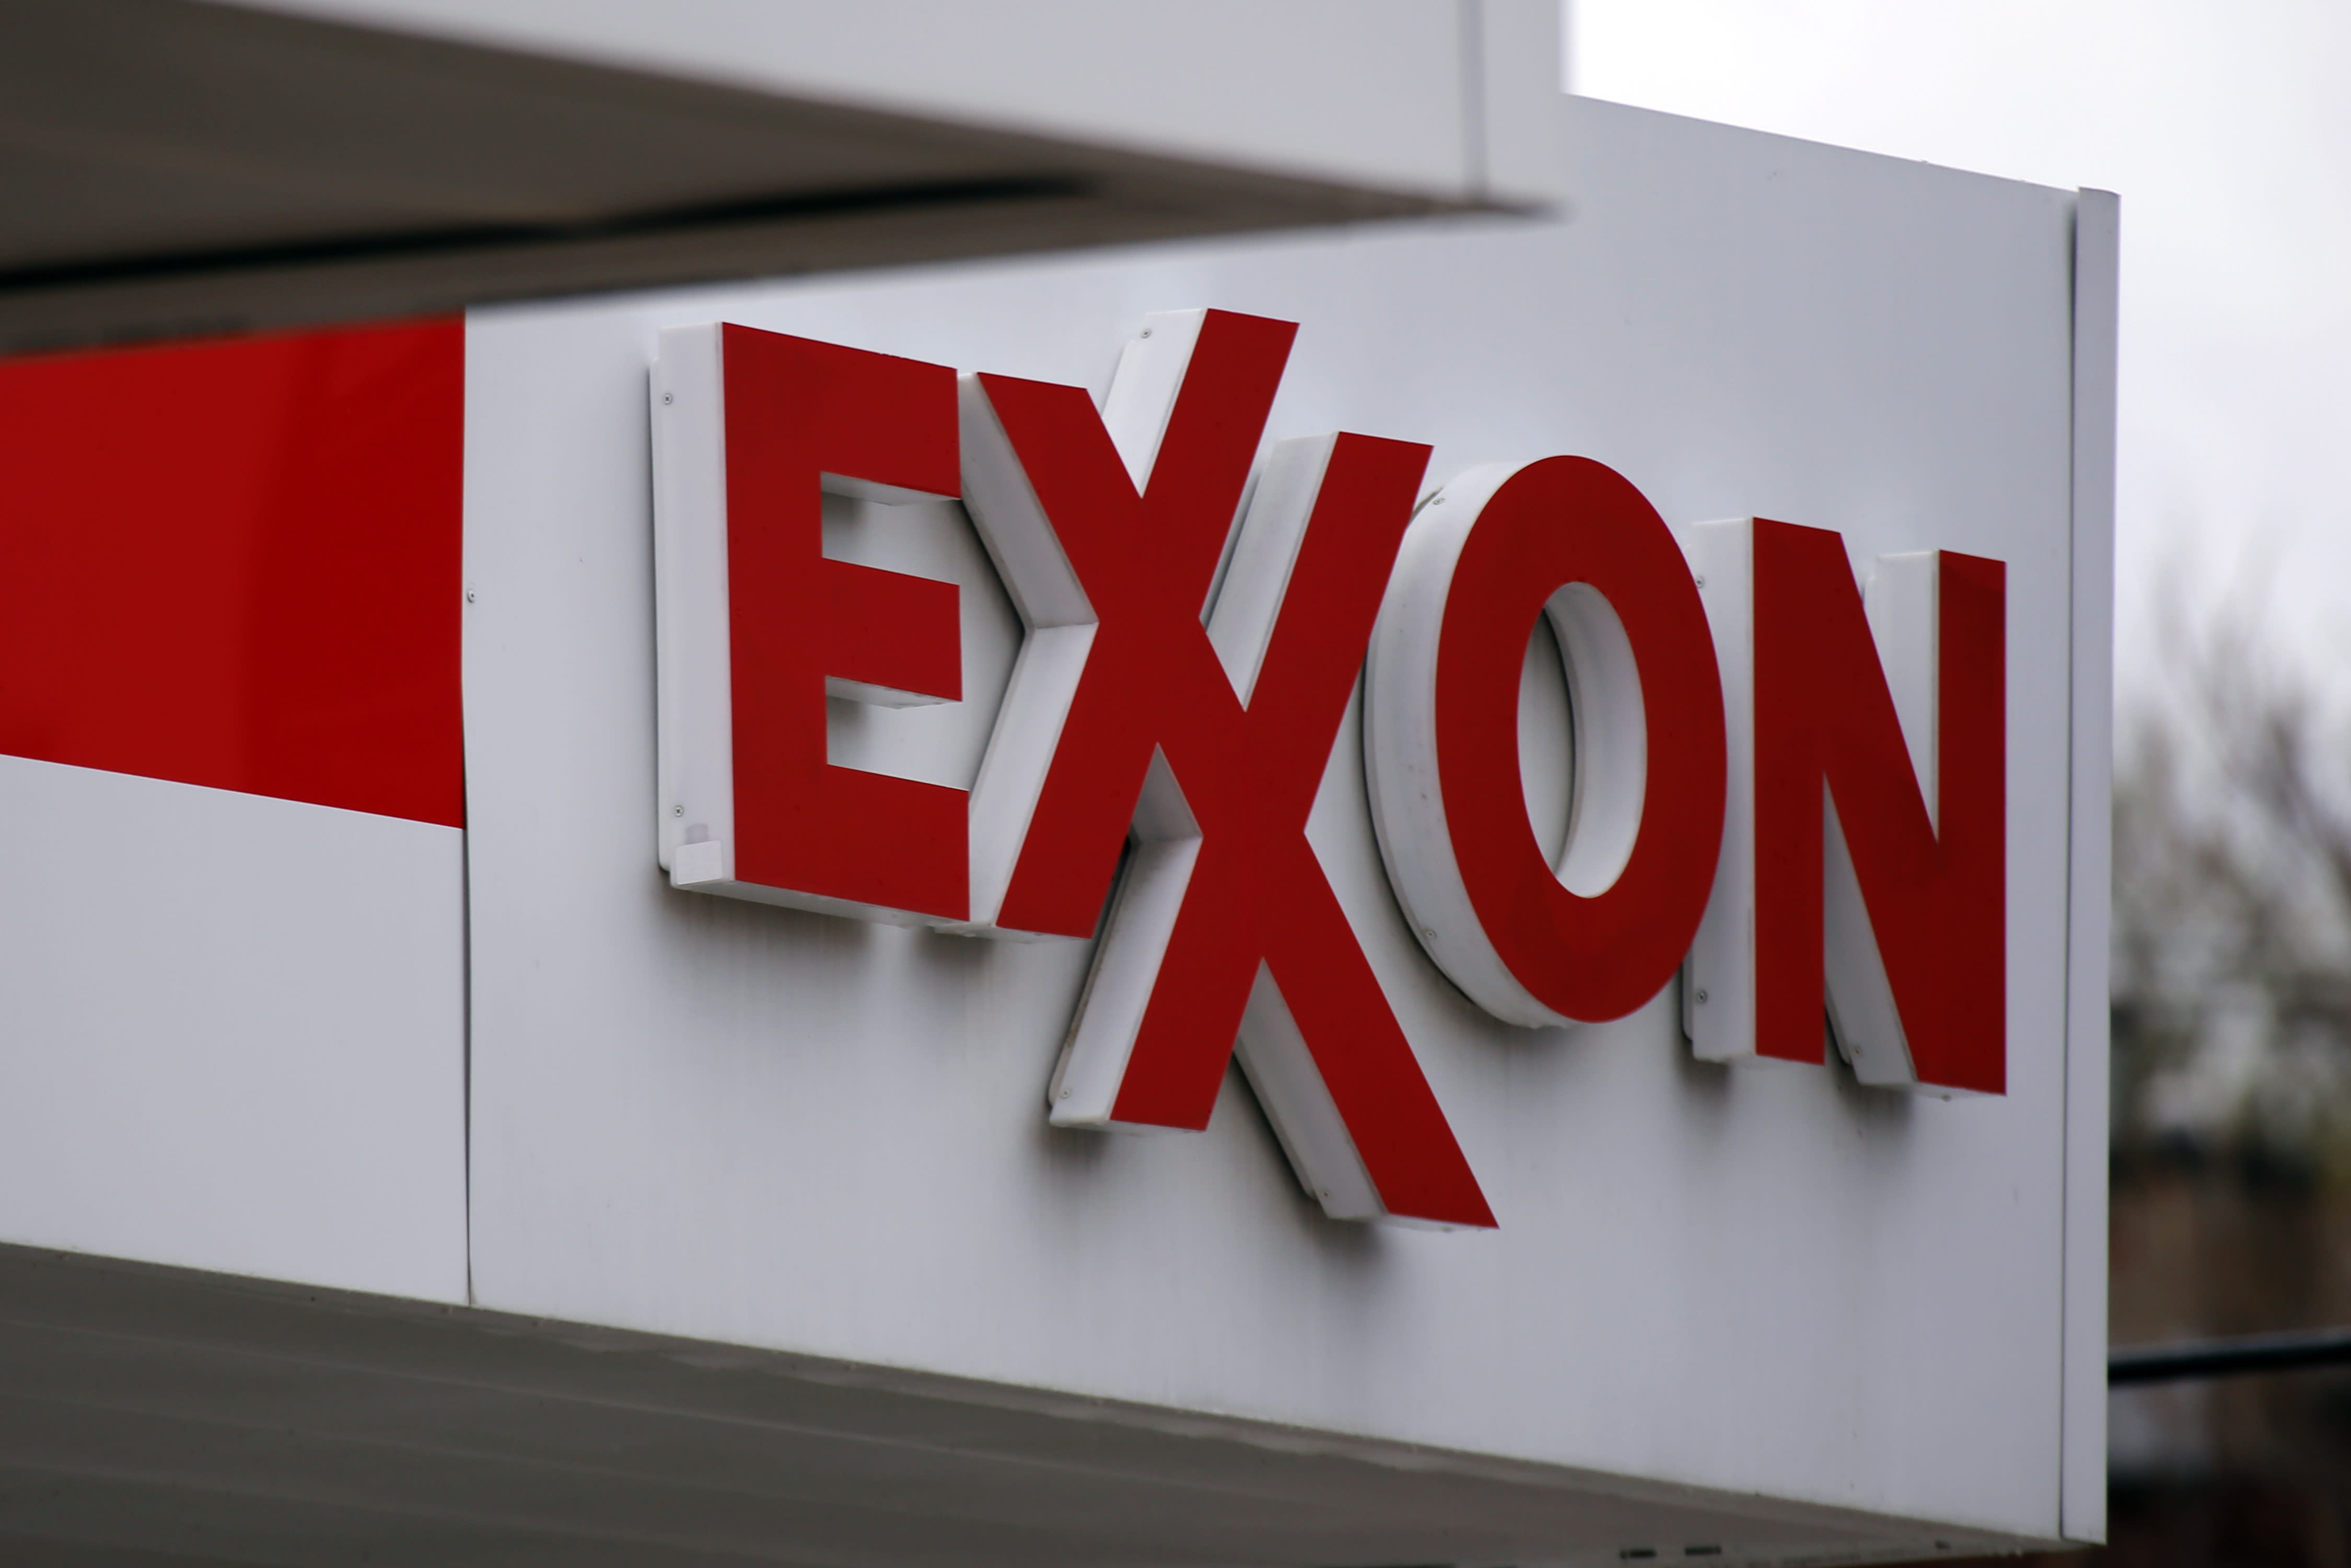 Exxon & Chevron slips on oil; American & Delta upgraded; Dollar Tree misses sales